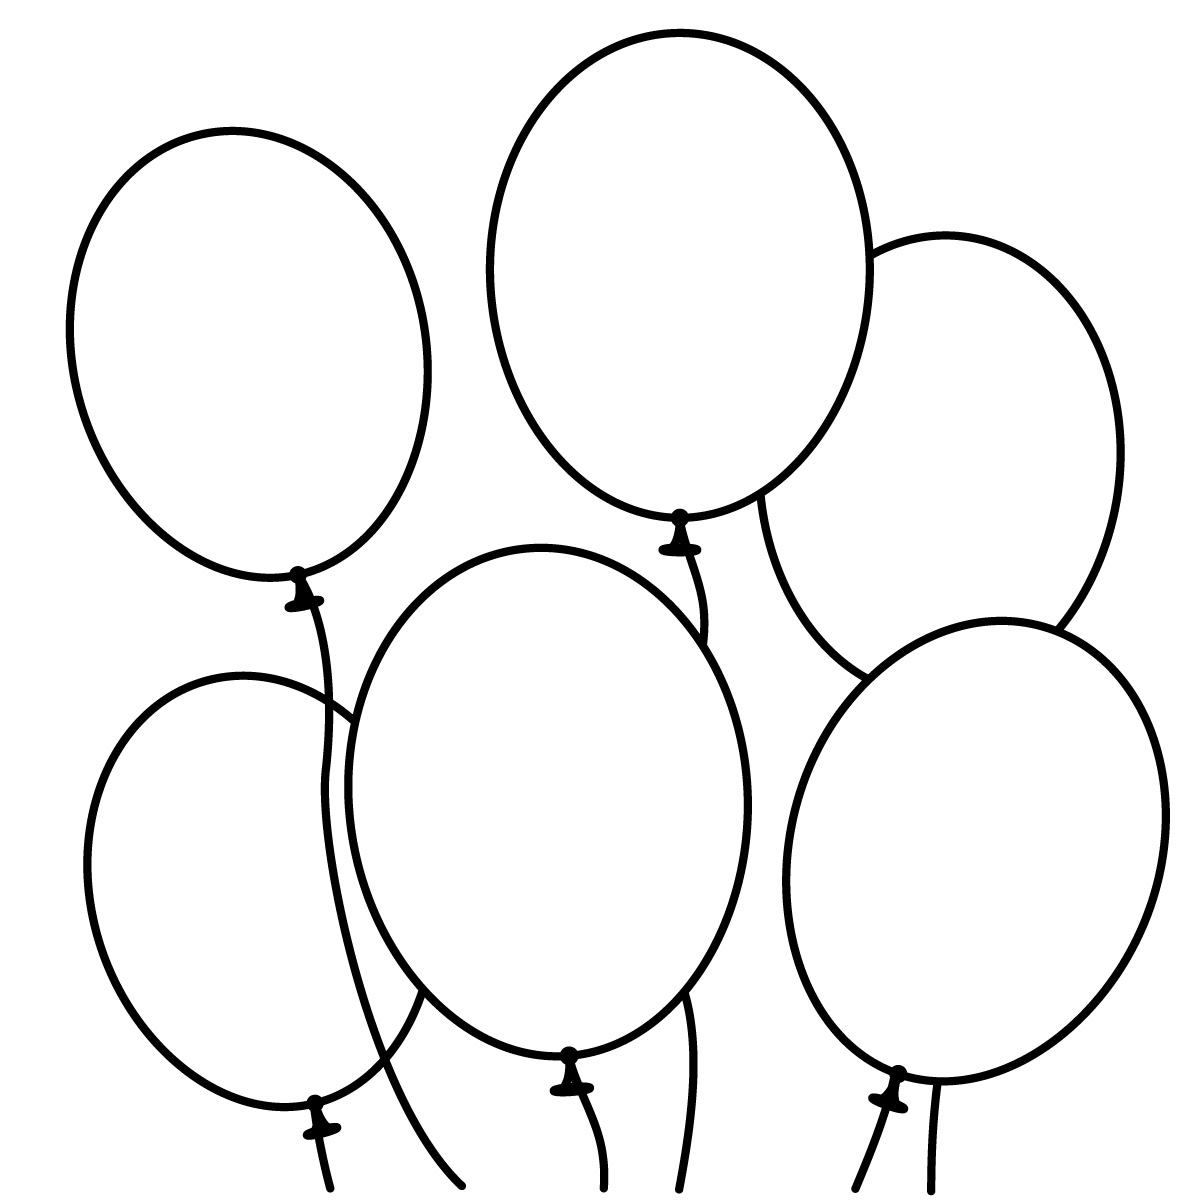 Balloons Clipart Black And White - ClipArt Best